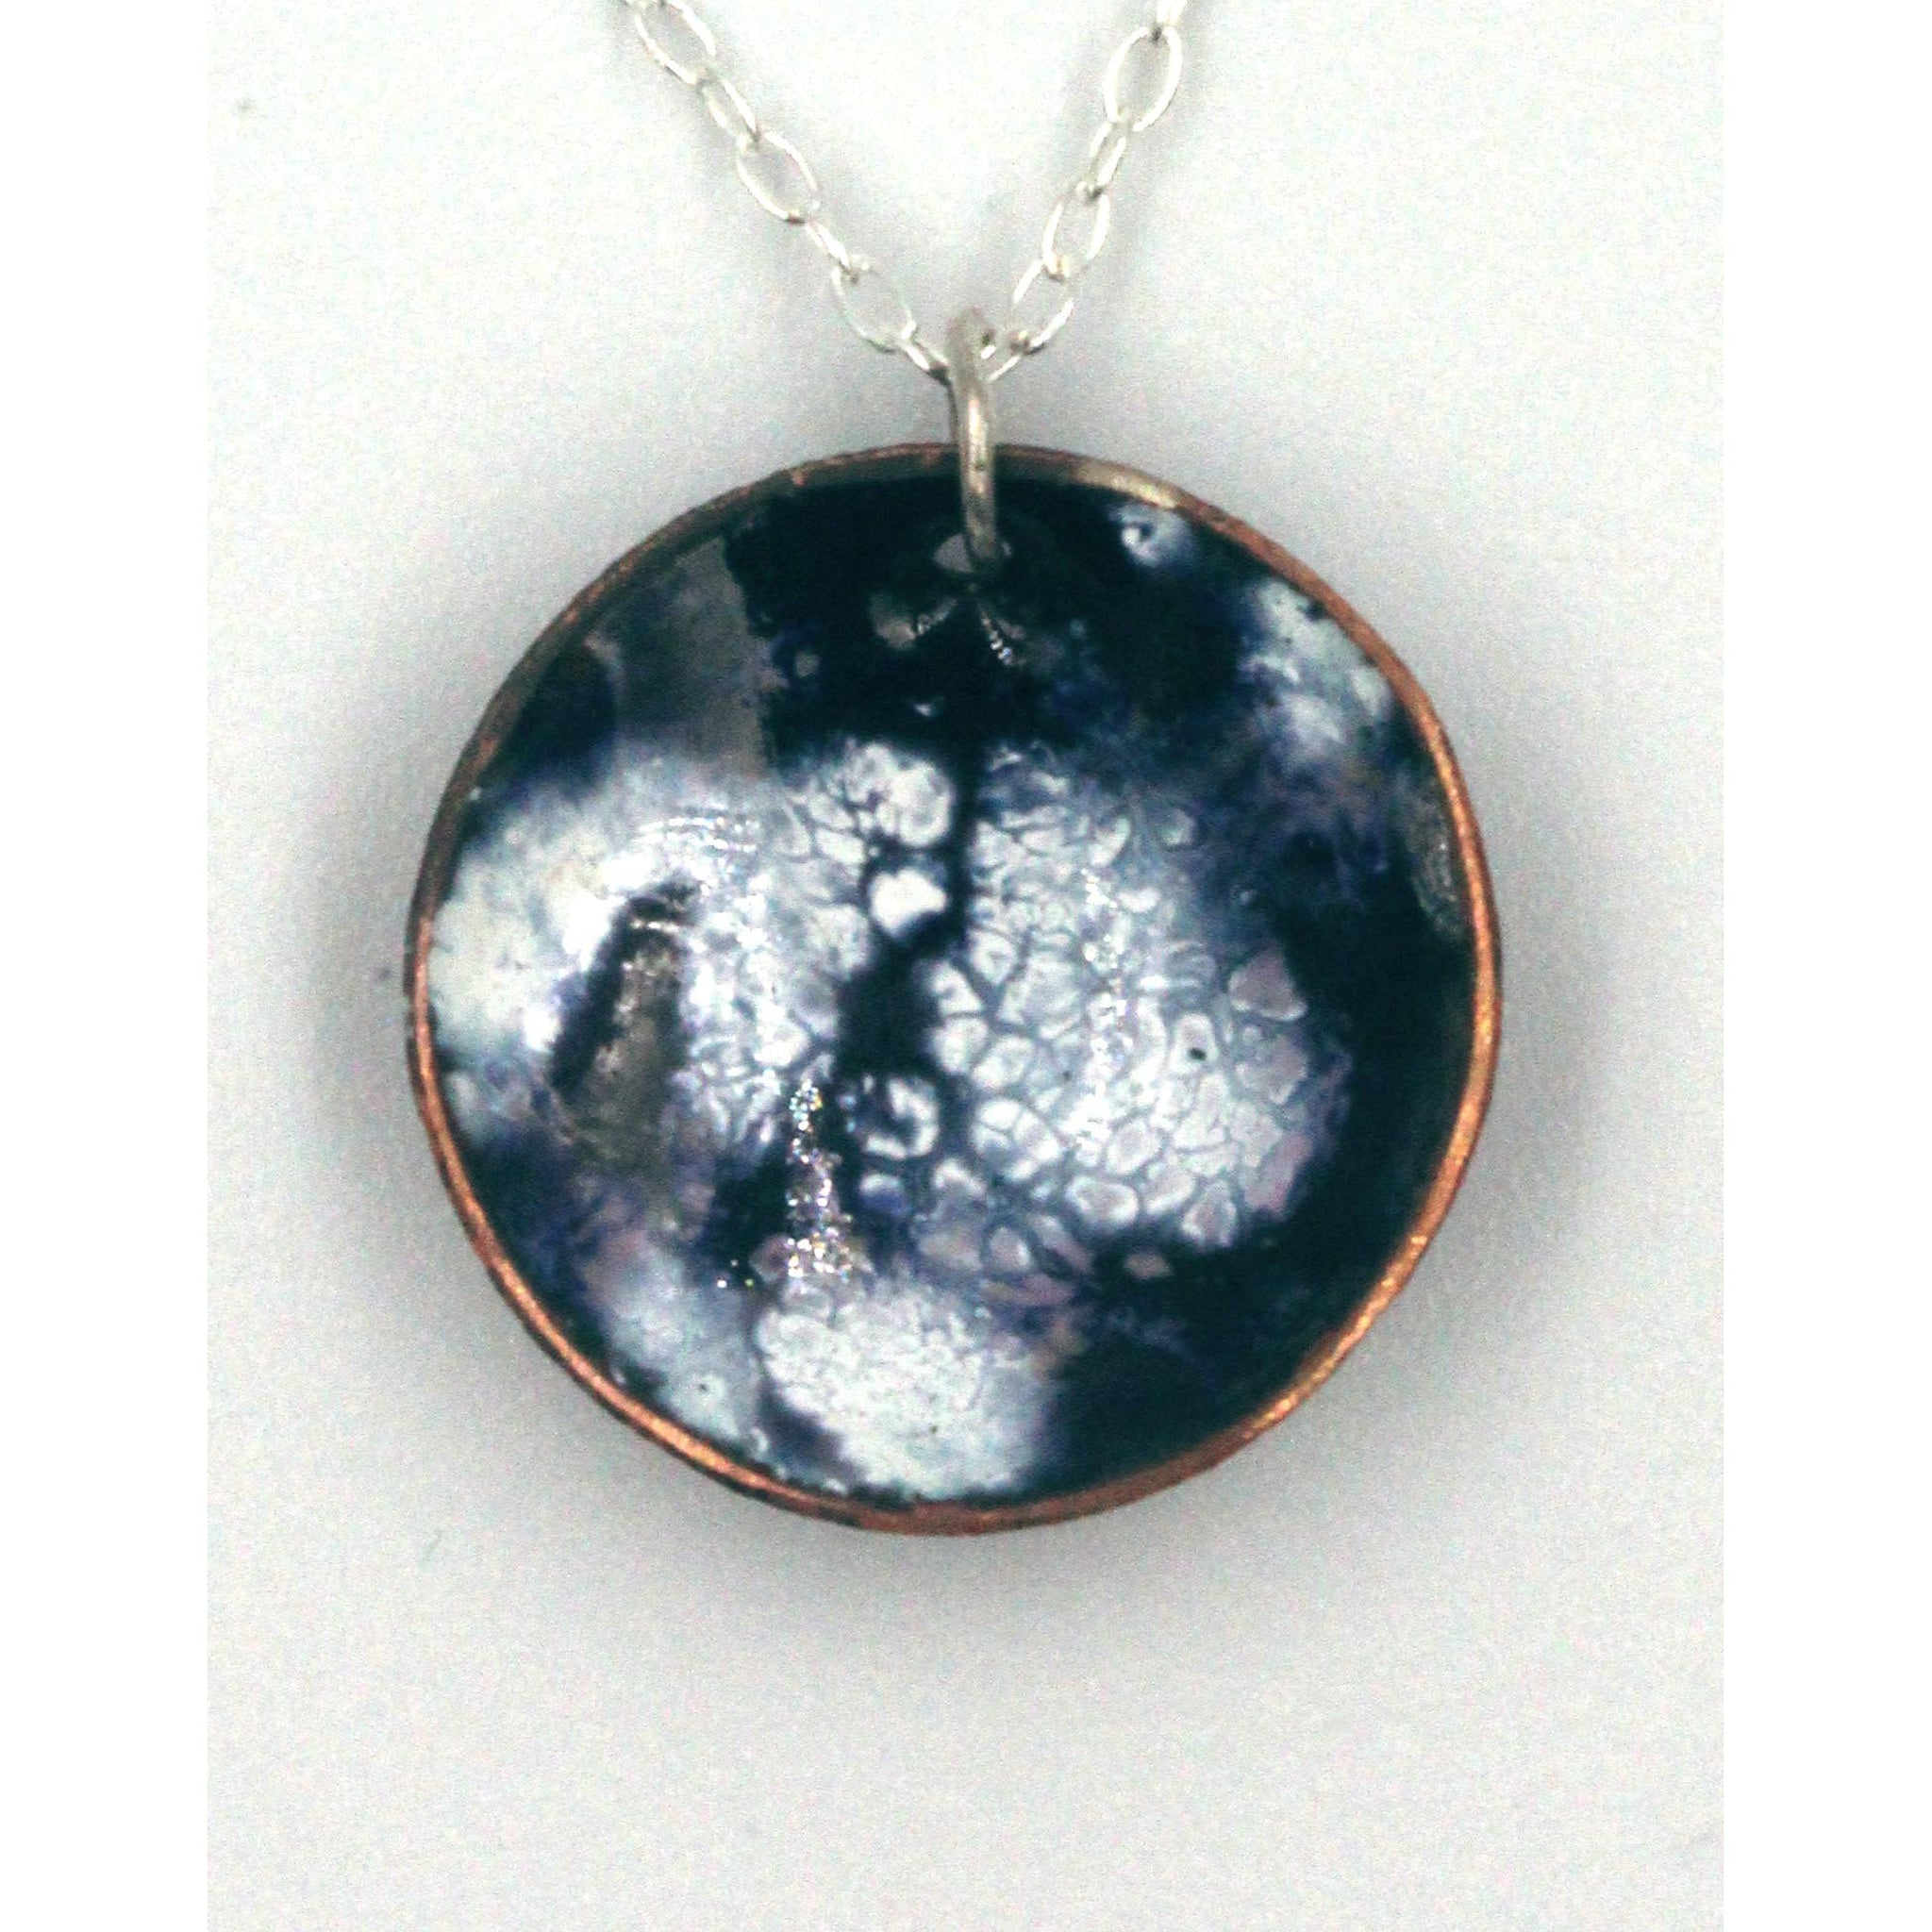 Enamel and copper 'Nebula' pendant handmade by Gemma Tremayne Jewellery, inpired by the beauty, magic and wonder of the nebulas and galaxies in outer space